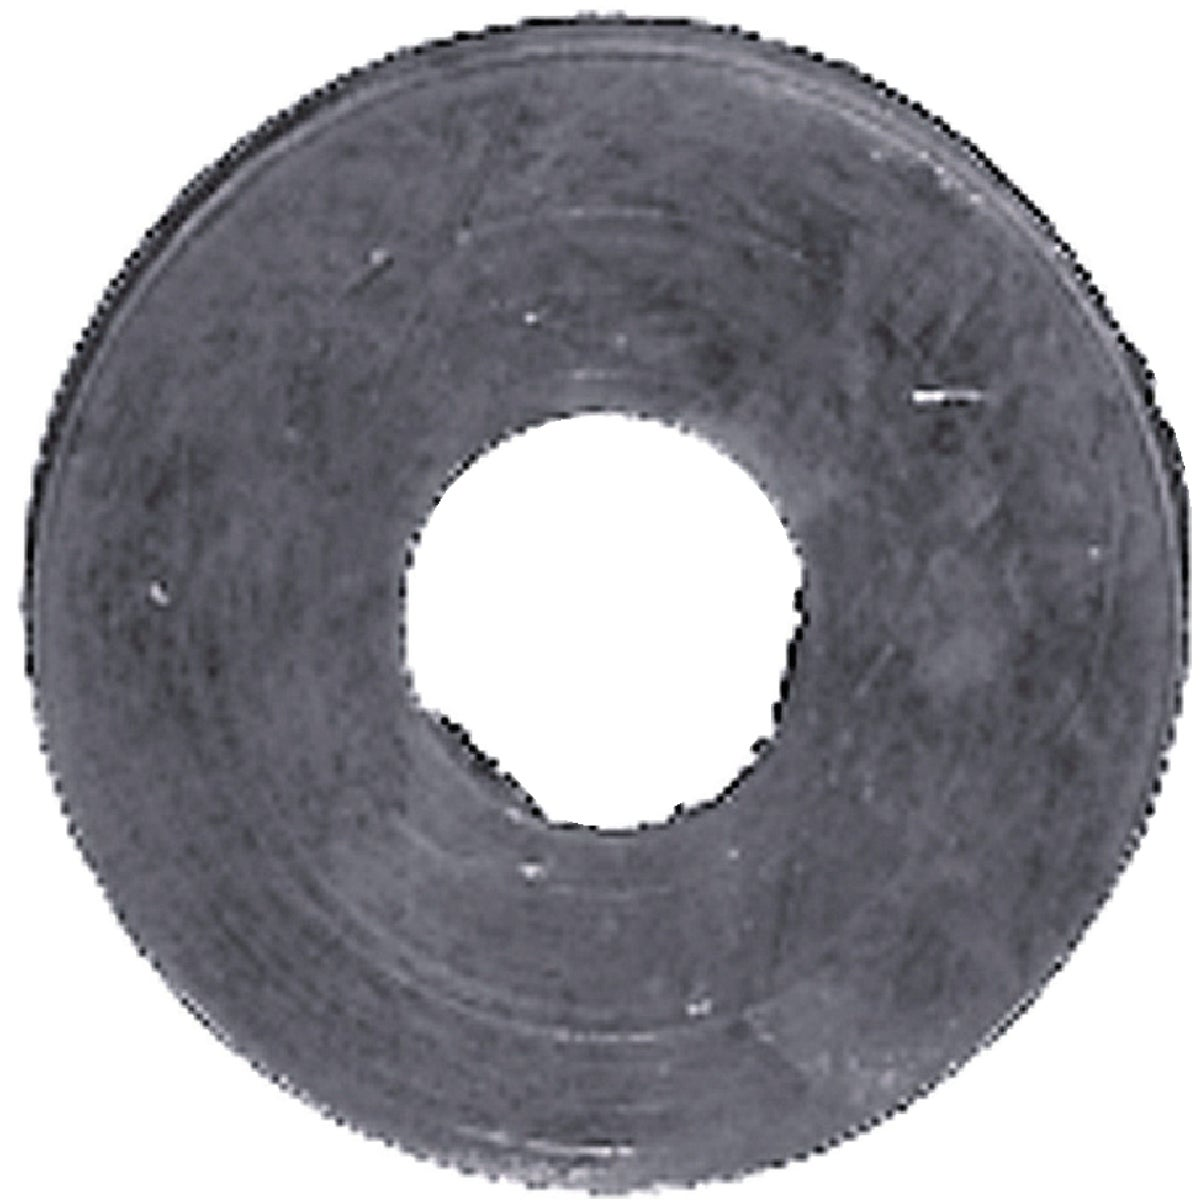 0 FLAT WASHER - 35063B by Danco Perfect Match